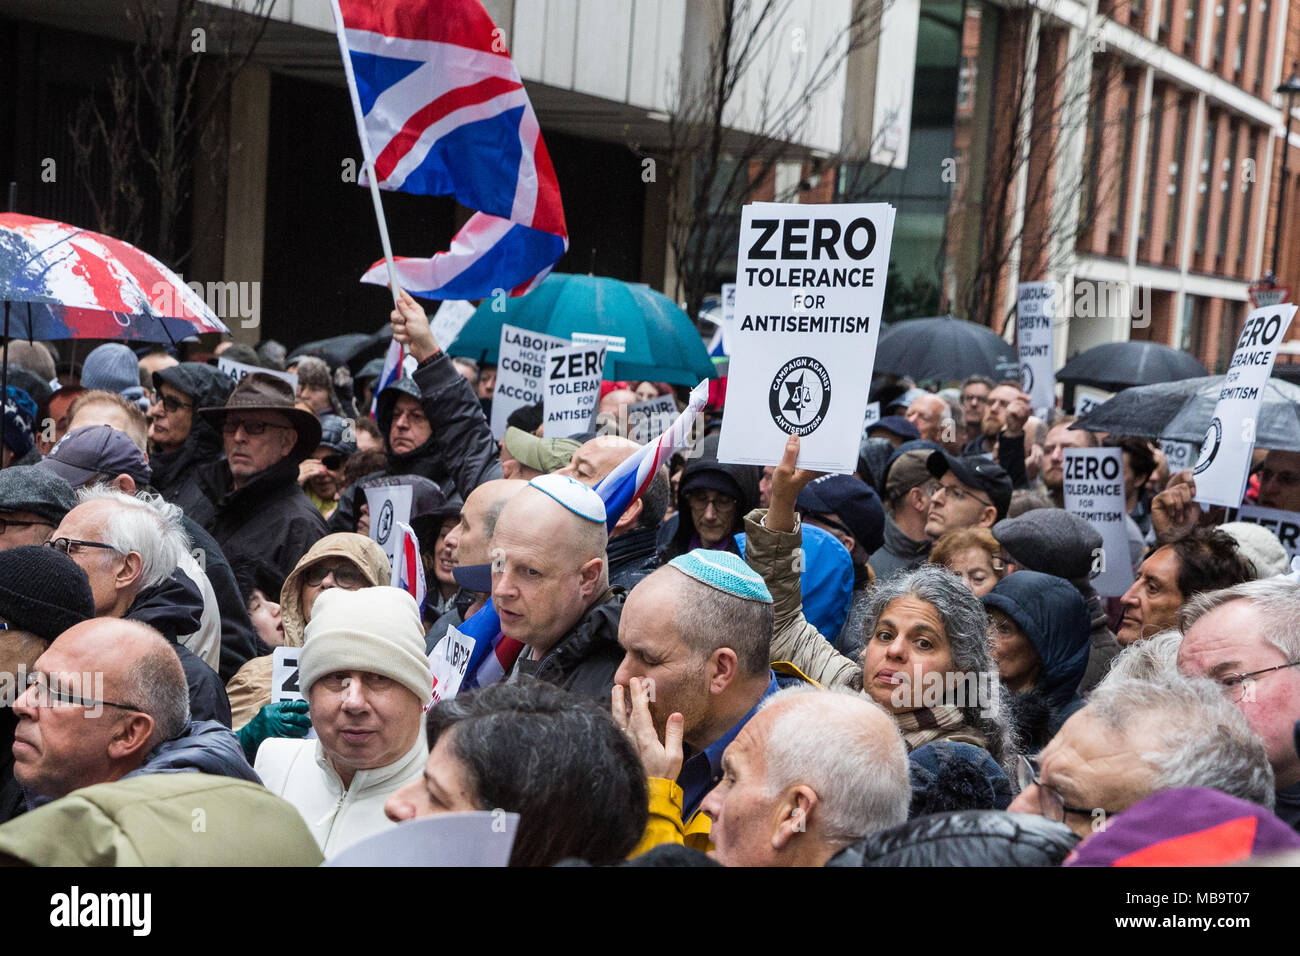 London, UK. 8th April, 2018. Jews and non-Jews attend a demonstration organised by the Campaign Against Antisemitism outside the head office of the Labour Party to apply pressure on its leadership to demonstrate a 'zero tolerance' approach to anti-Semitism. Credit: Mark Kerrison/Alamy Live News - Stock Image